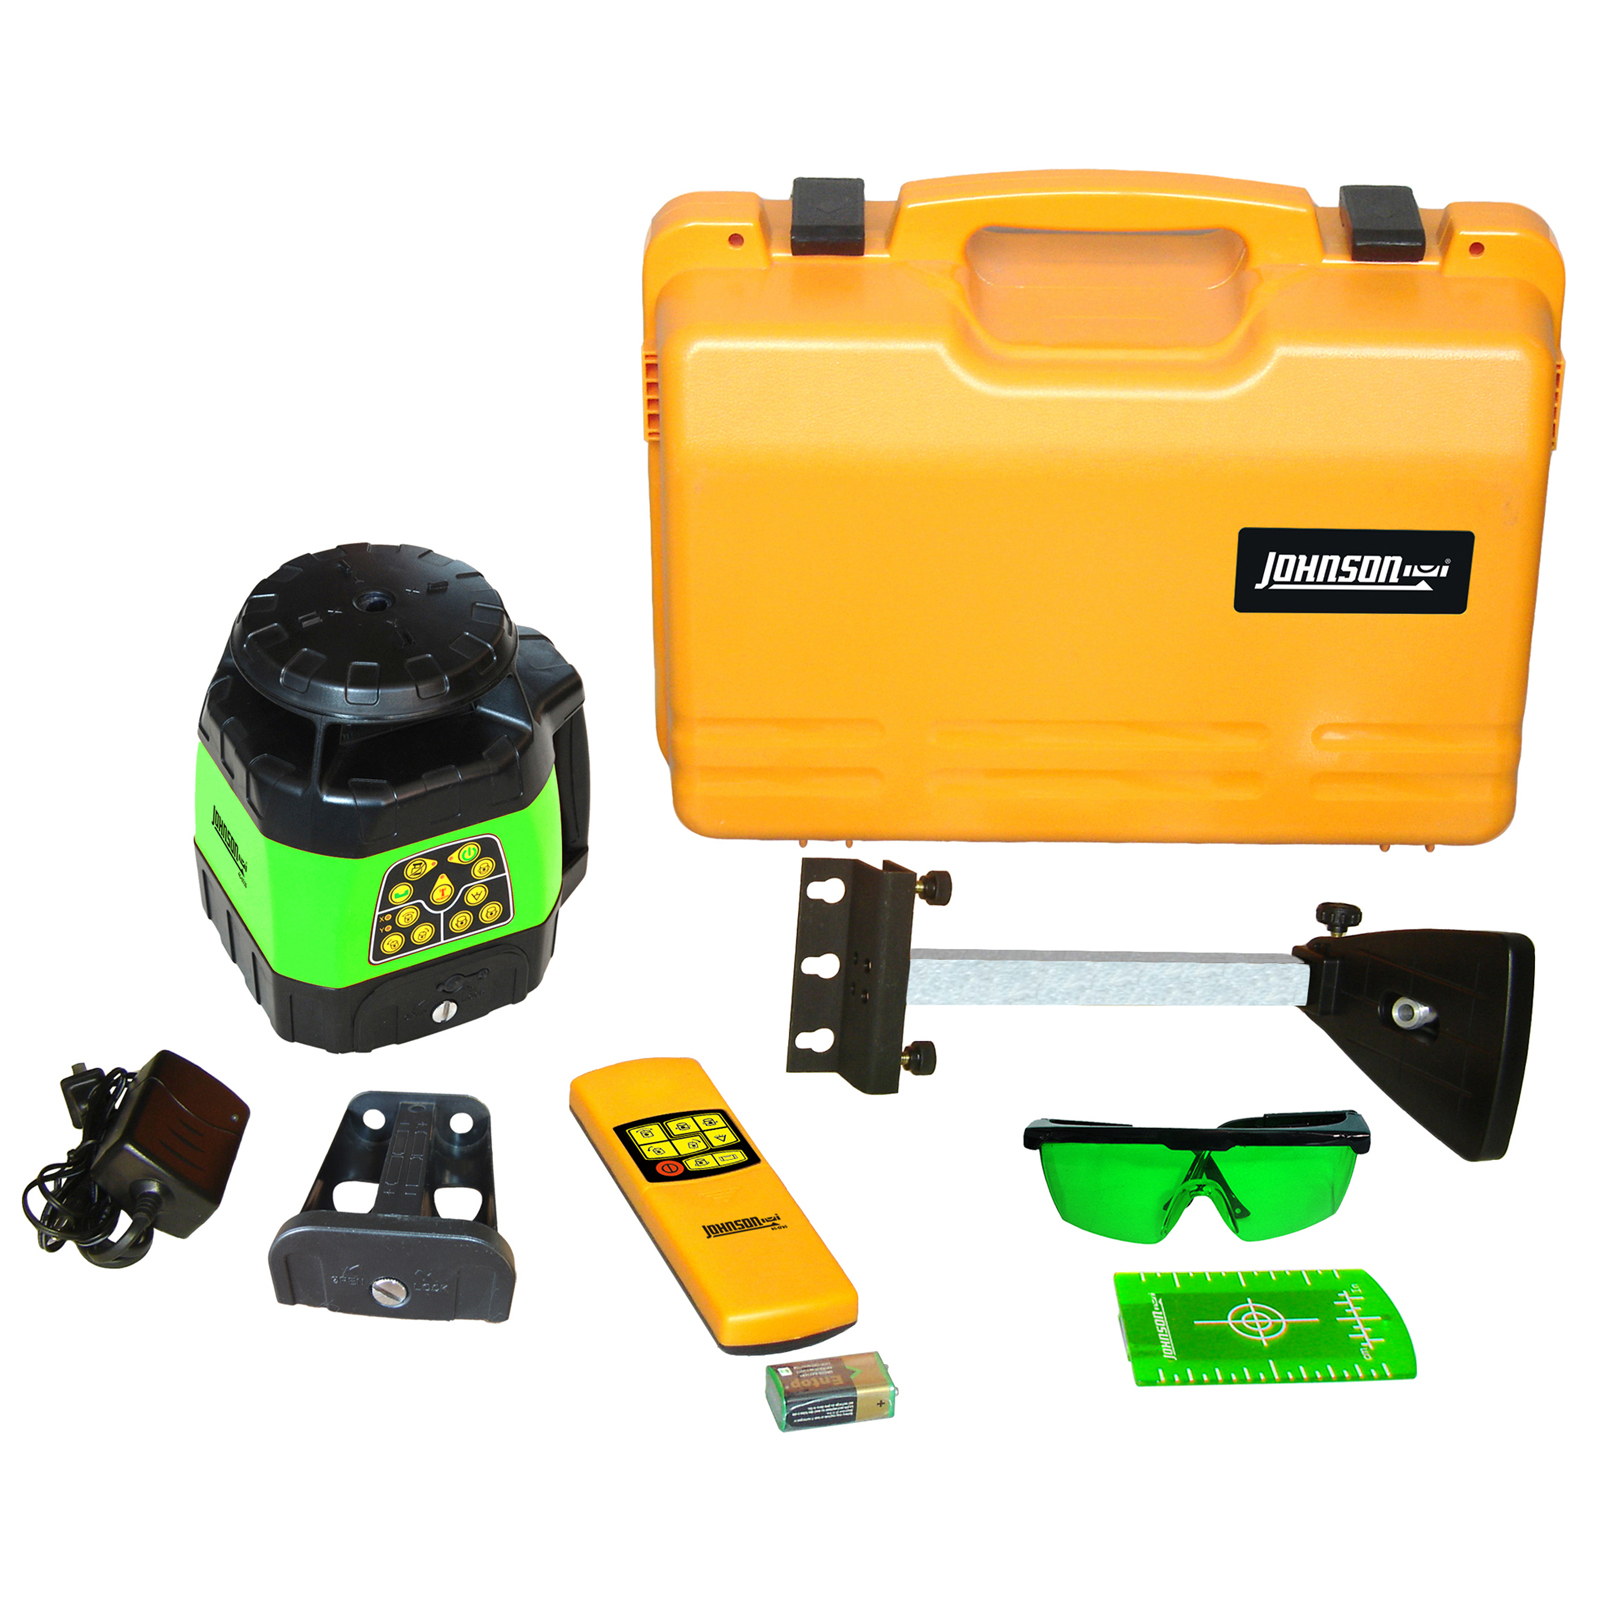 Johnson Level Electronic Self-Leveling Horizontal & Vertical Rotary Laser Kit with GreenBrite Technology